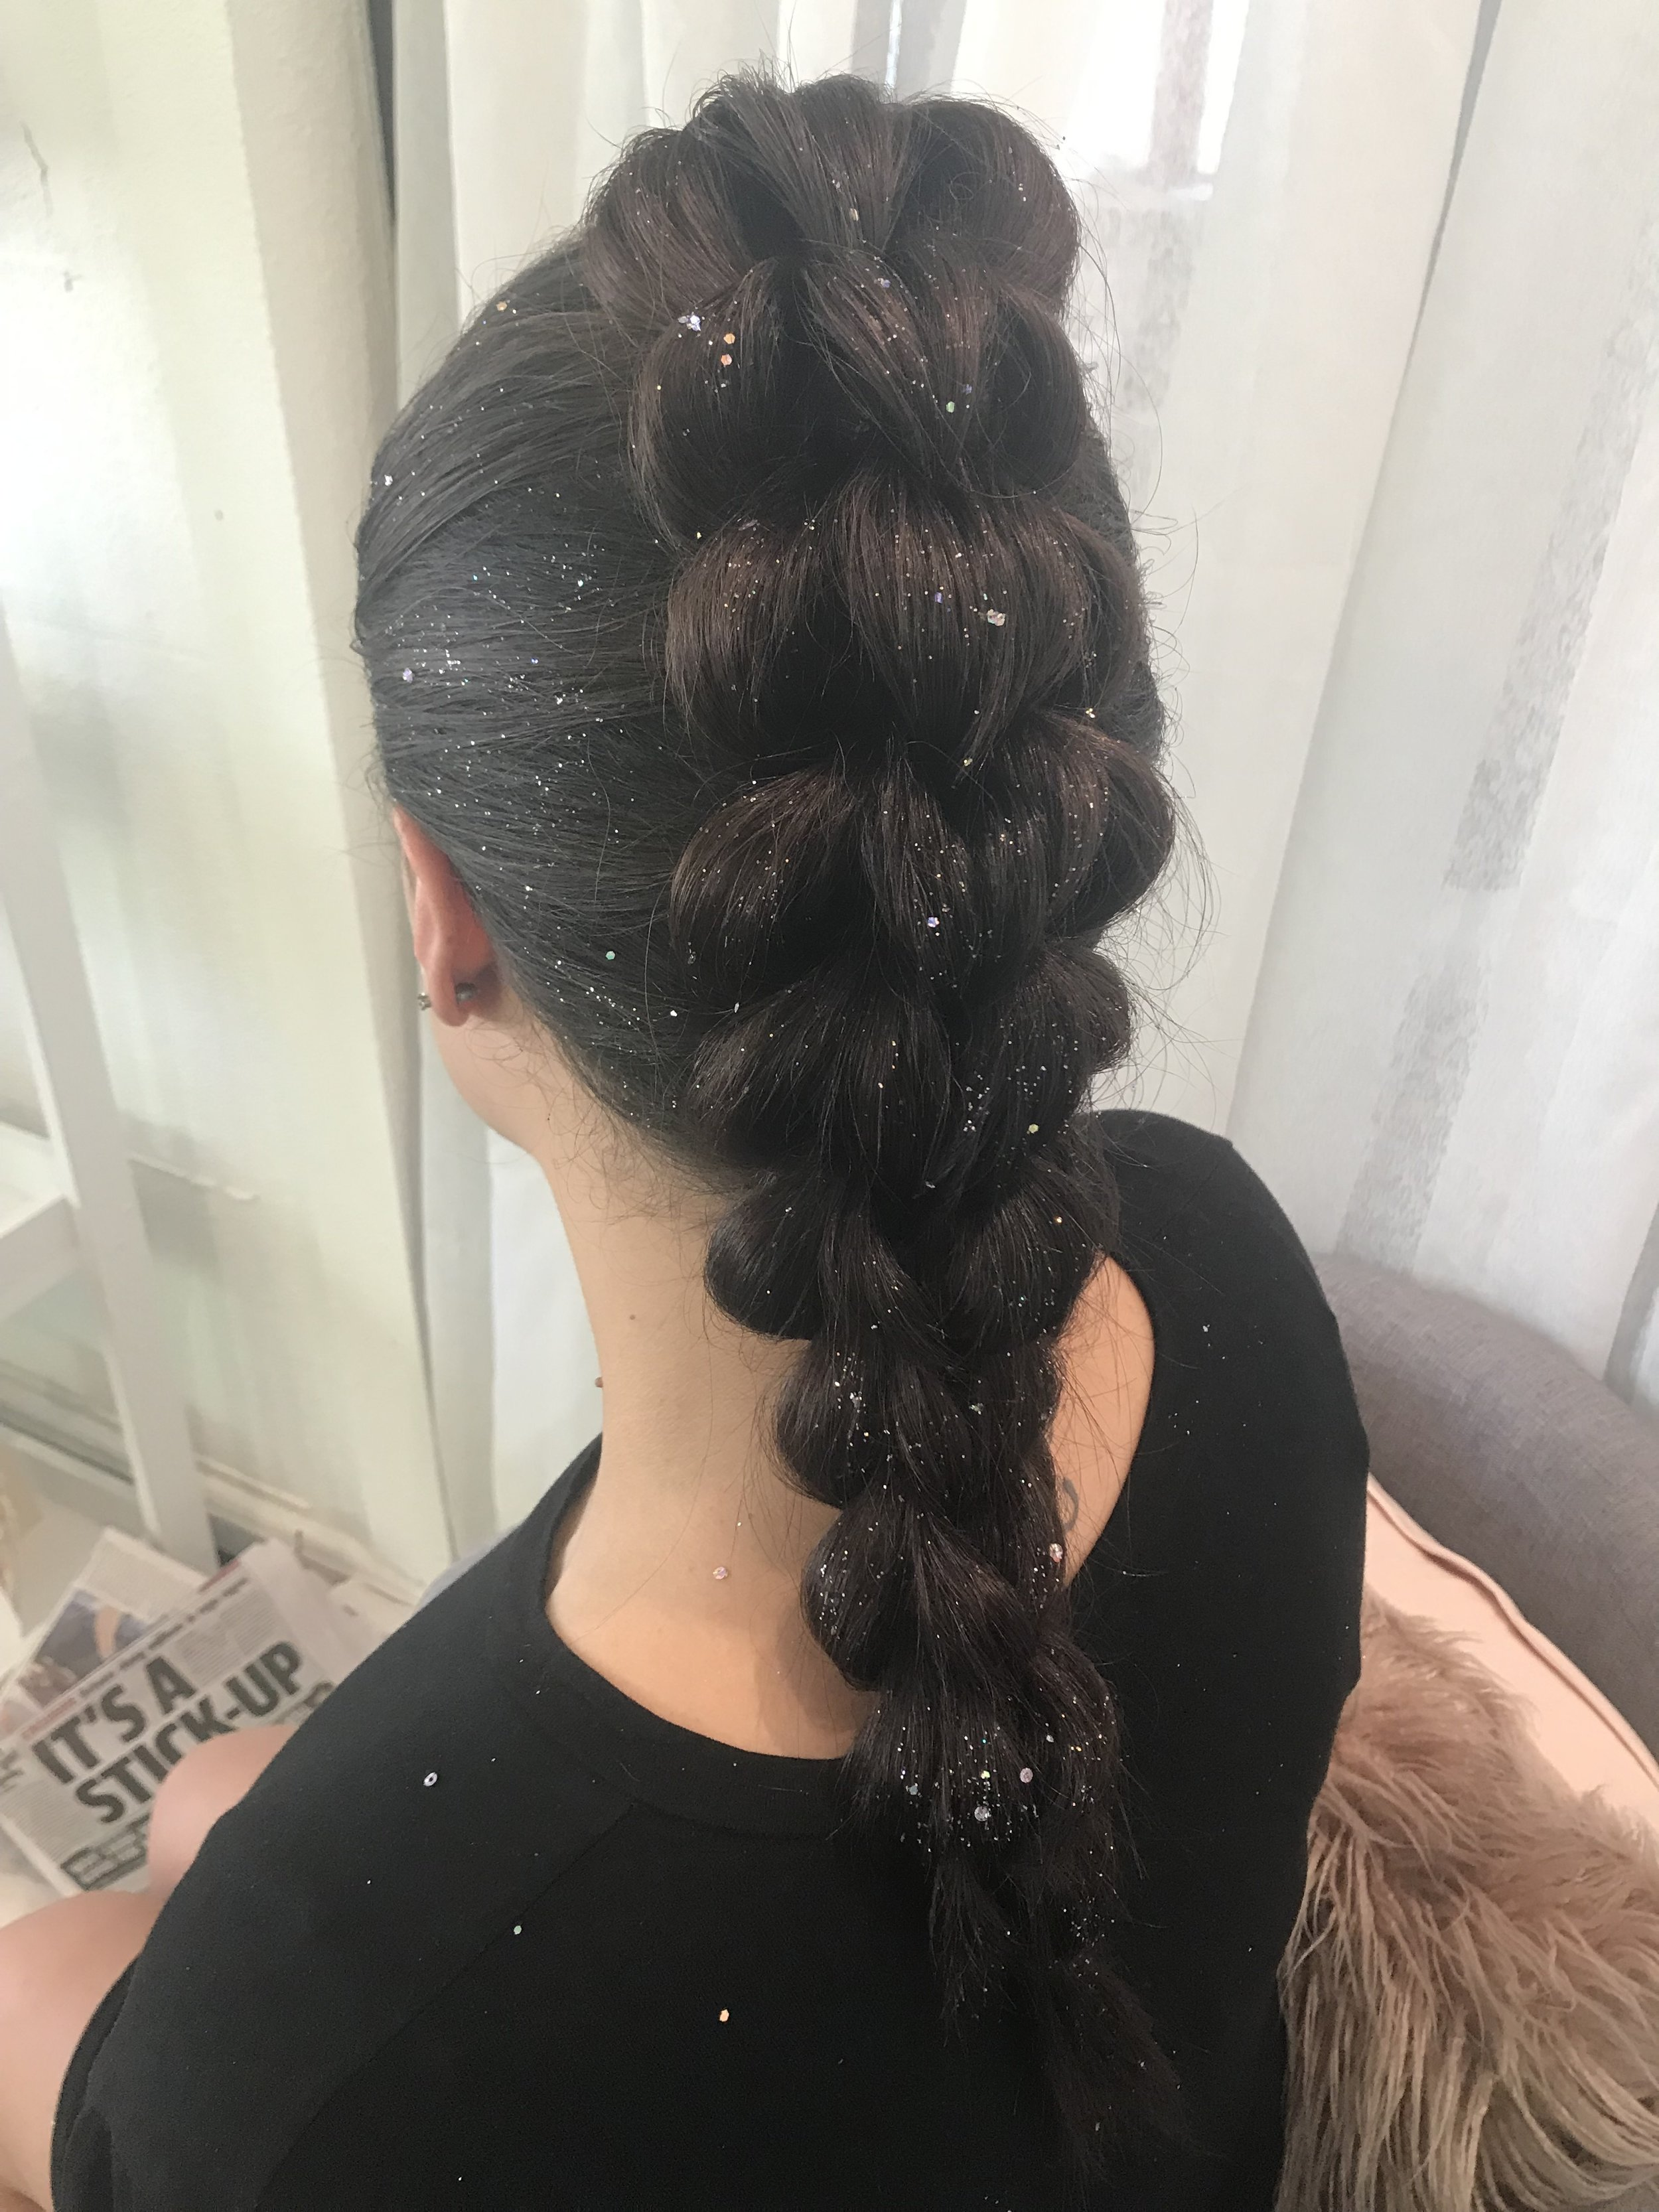 Hair Braiding Salon Australia Kellie Turner 45.jpg